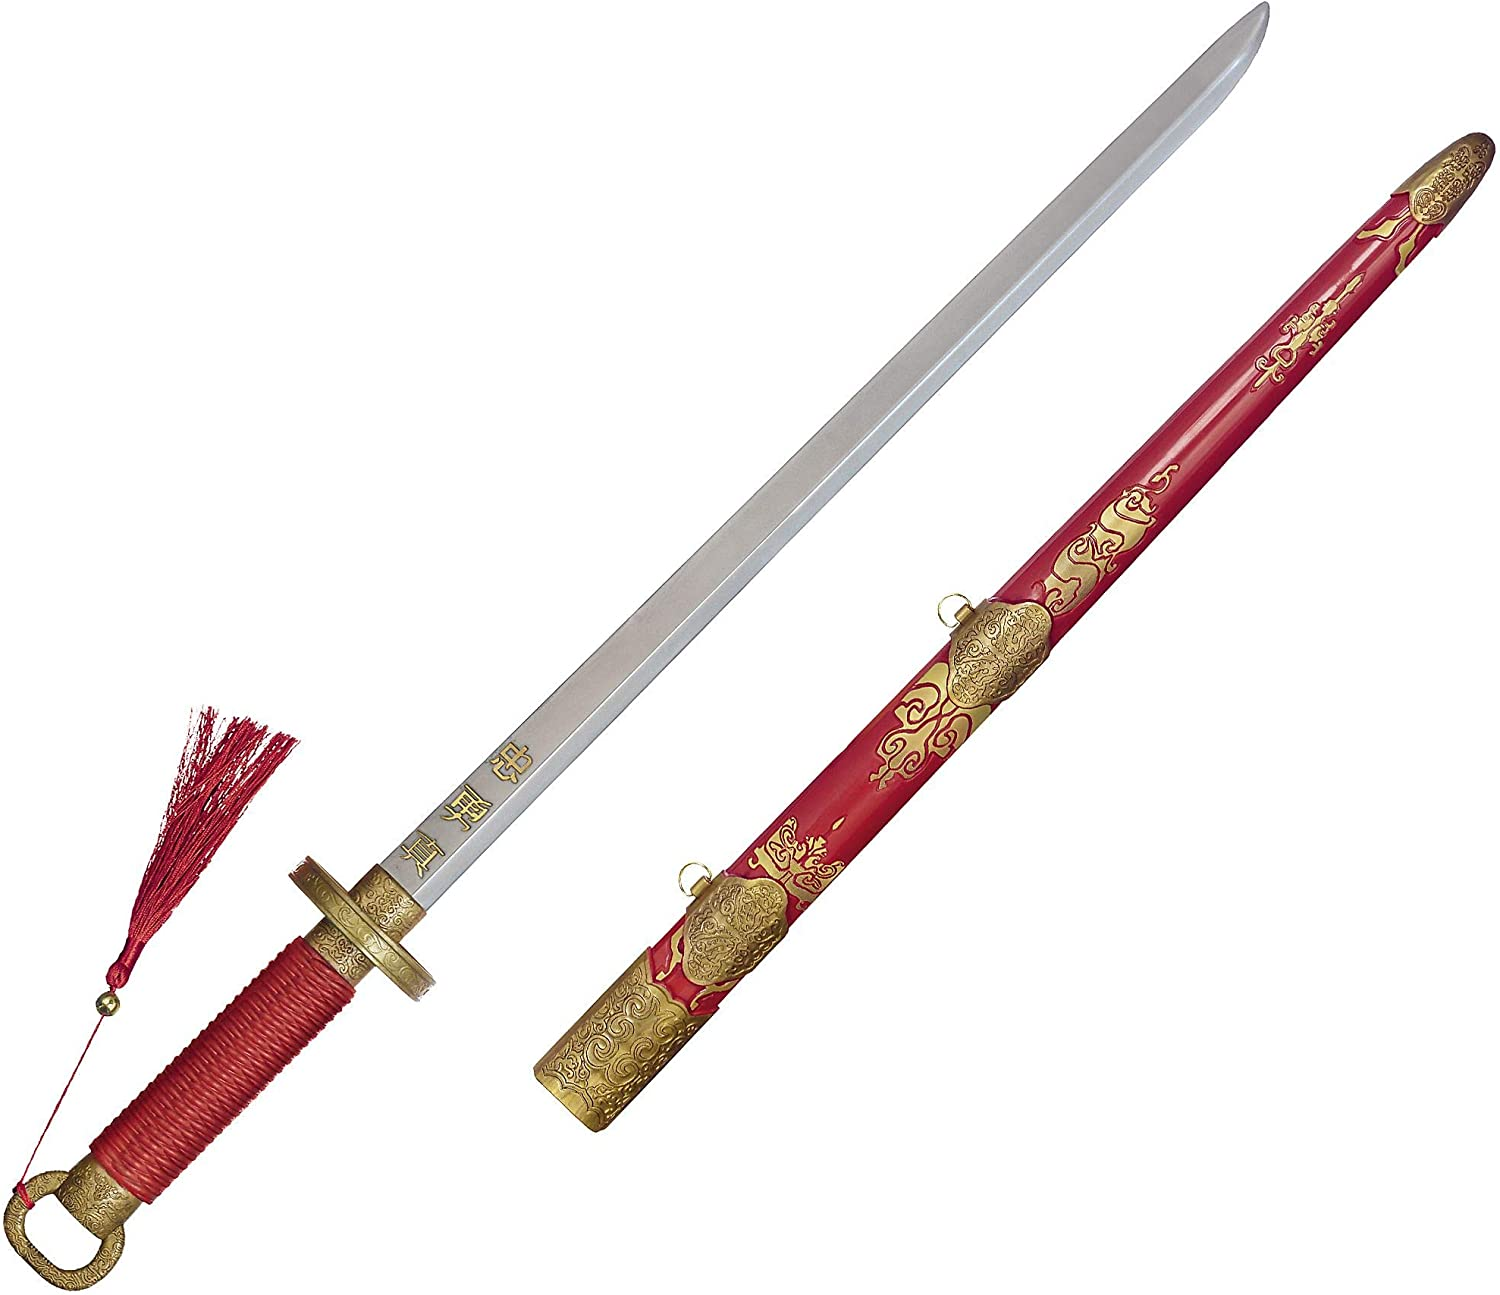 Amazon Com Party City Mulan Plastic Toy Sword Red Fabric Wrapped Handle Live Action Movie Inspired Halloween Costume Prop Clothing